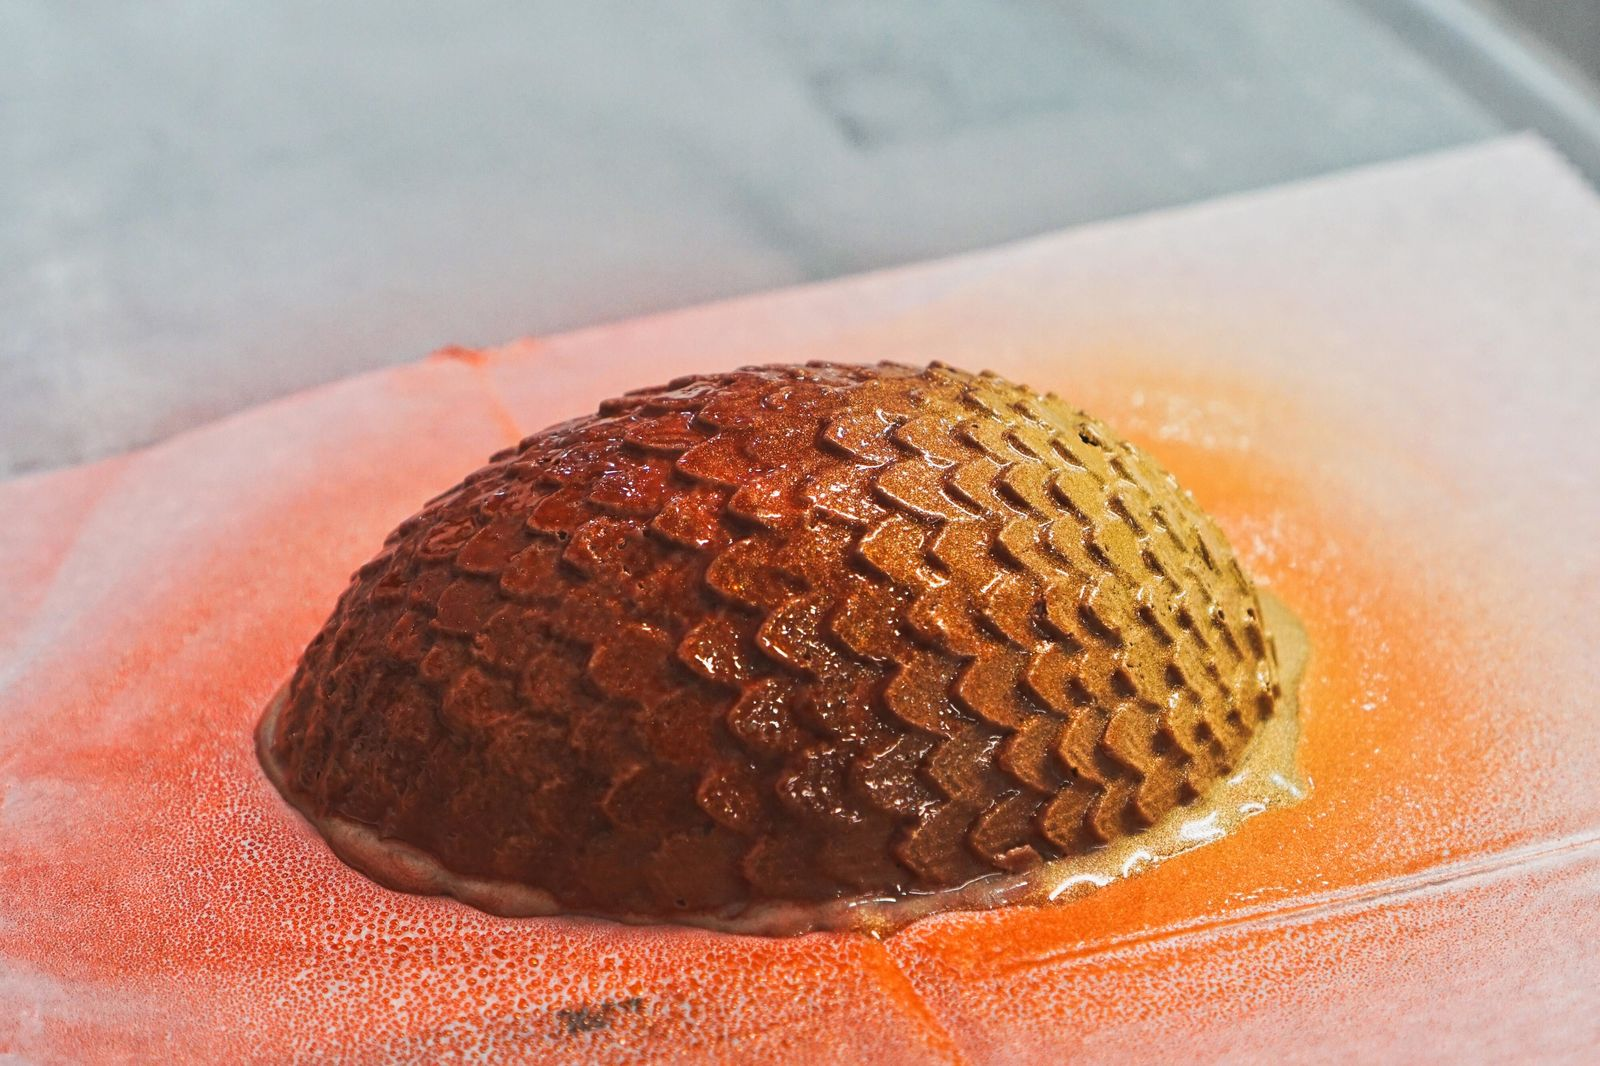 Drogon's egg tastes like spicy hot chocolate.{ }(Photo: Emily Faber, Sinclair Broadcast Group)